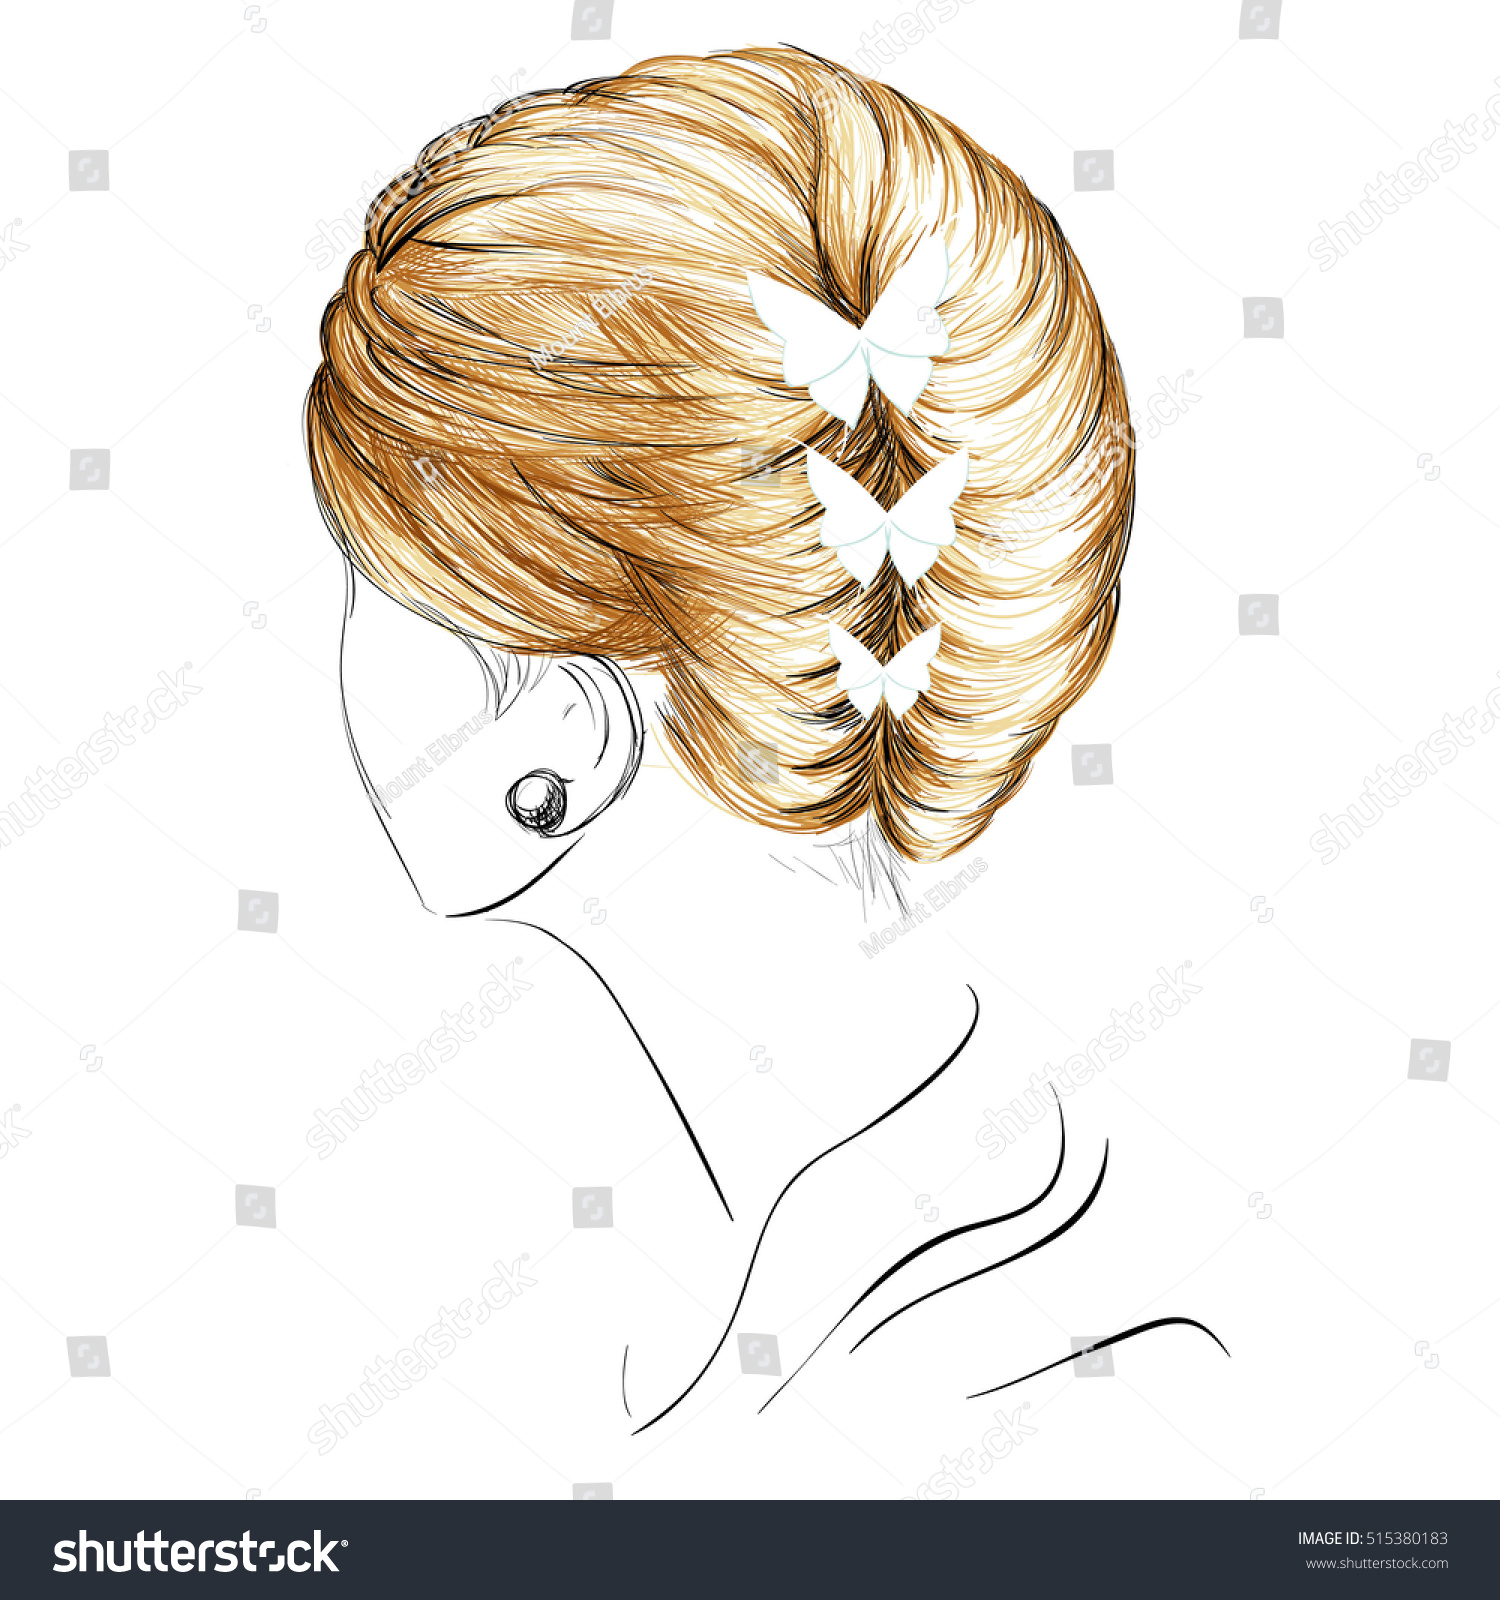 Sketch French Twist Hairstyle Butterflies Vector Stock Vector (2018 ...